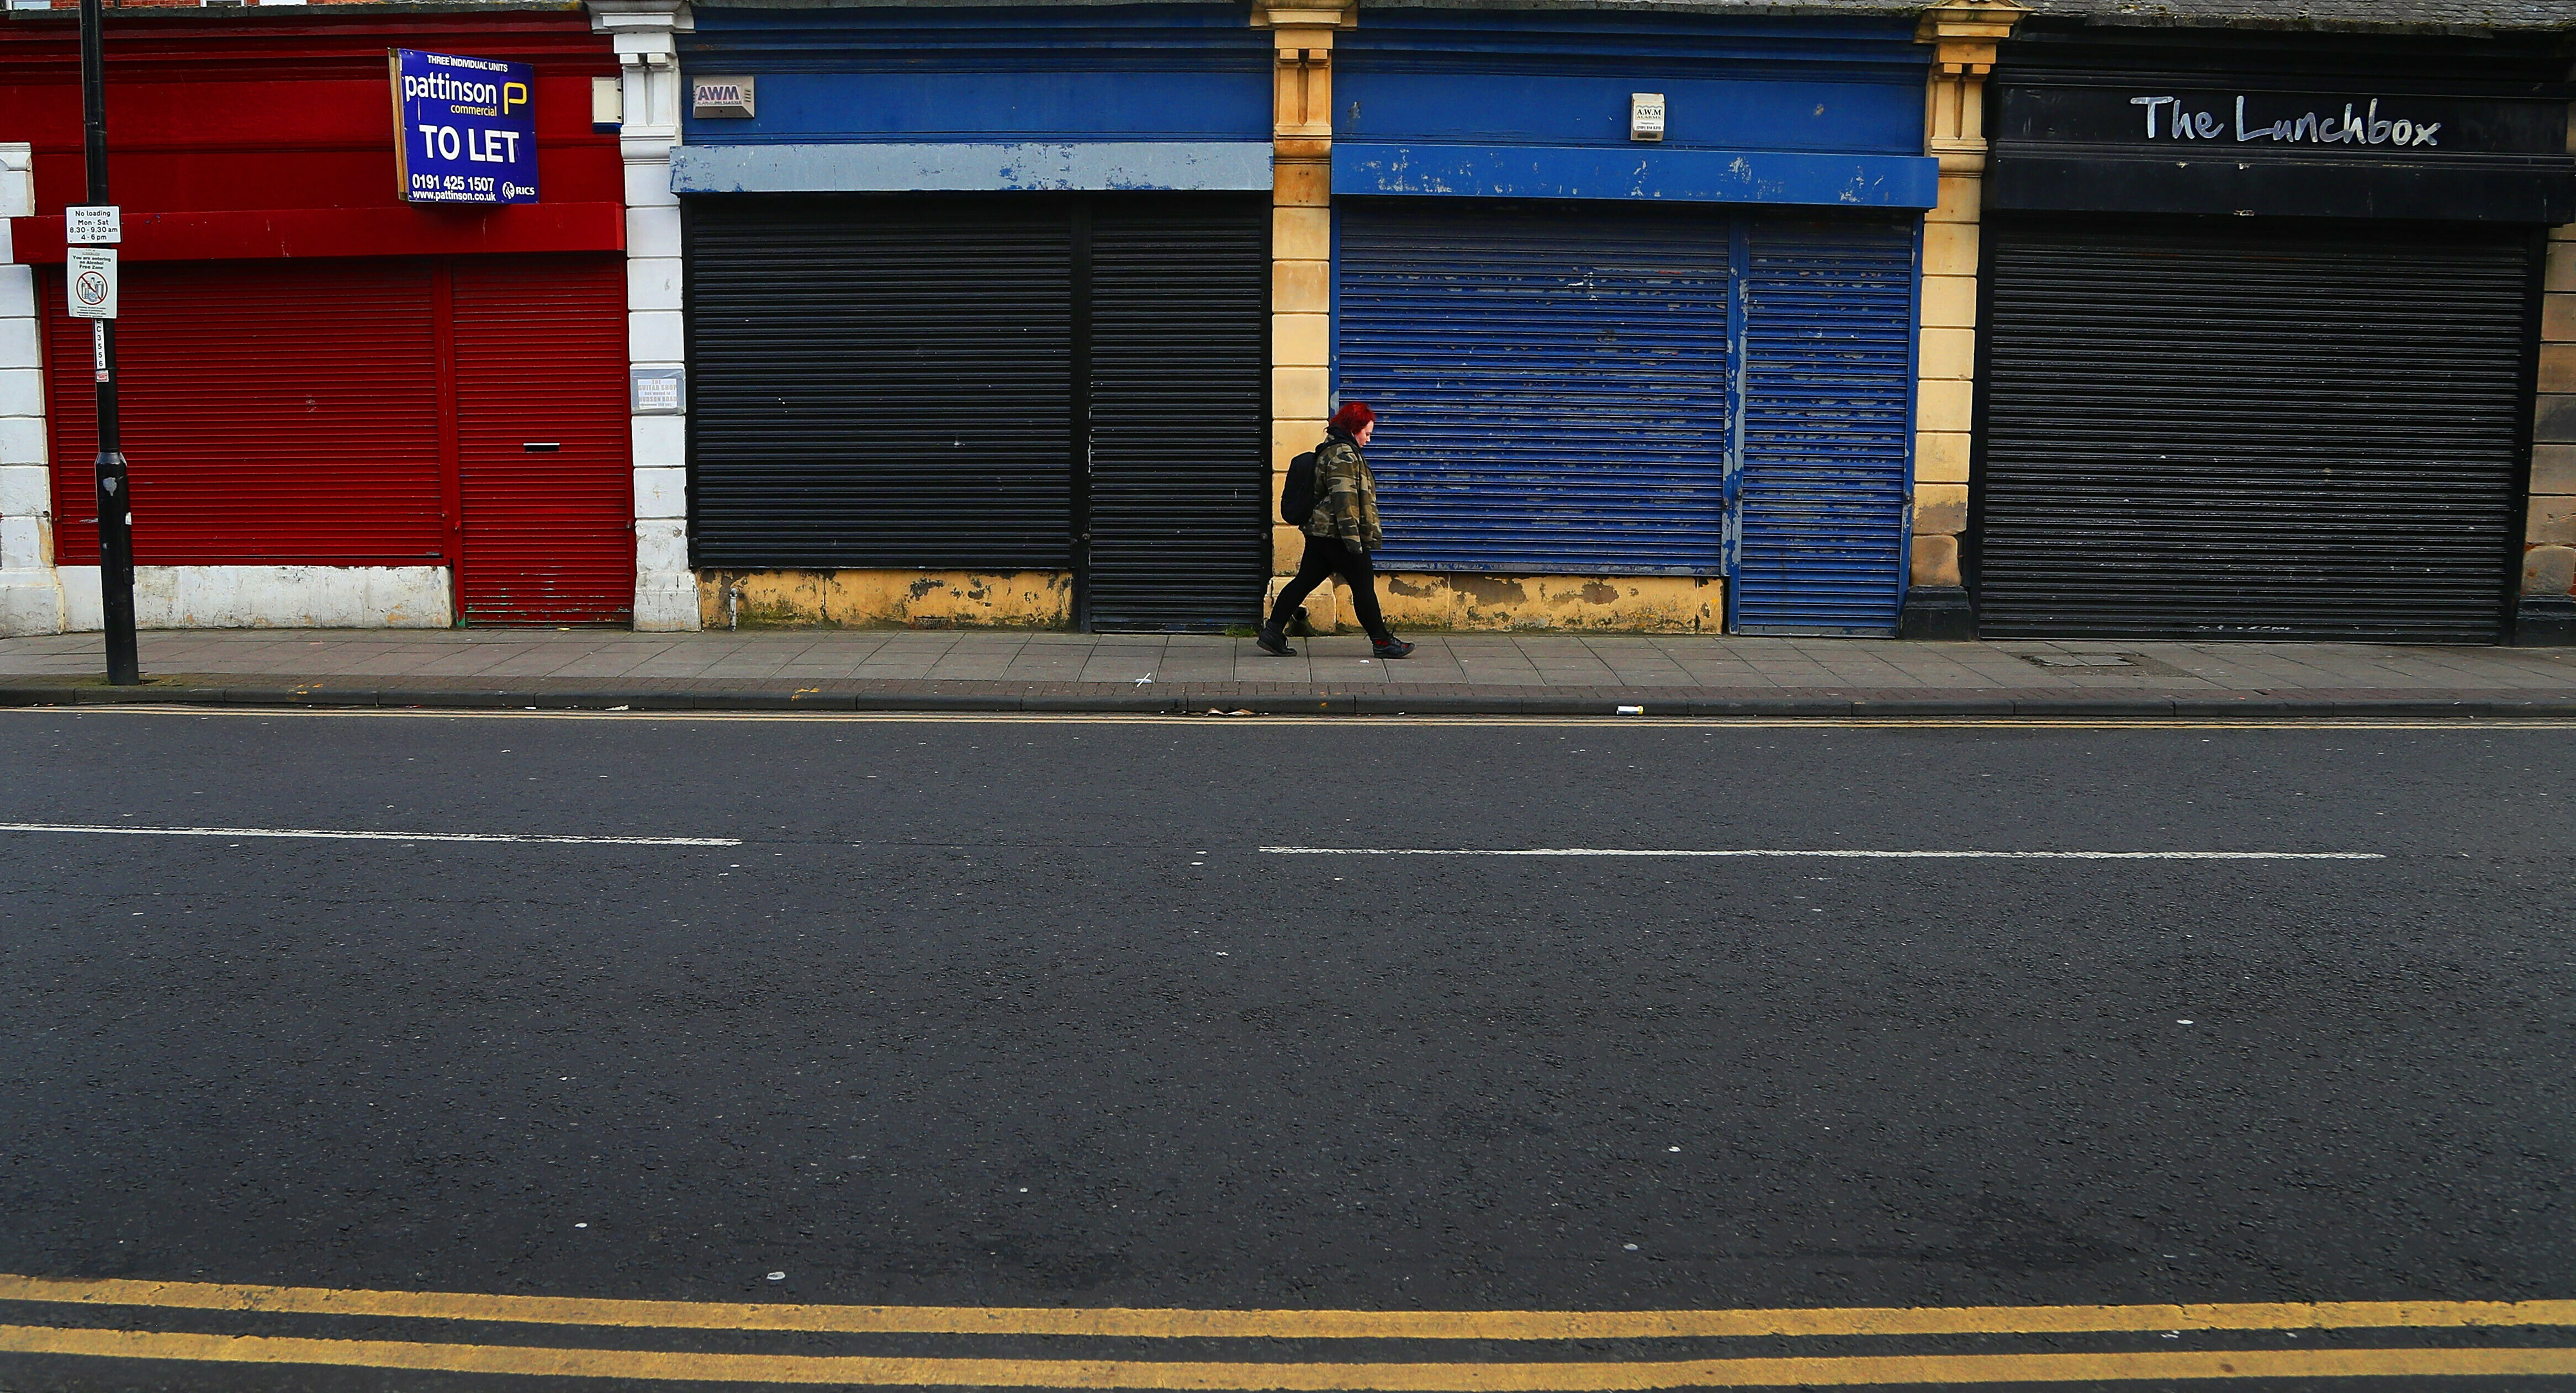 A woman passes closed down shops in the city centre of Sunderland, England, Wednesday, March 13, 2019. The city's unemployment rate is well above the national average, and pockmarked and shuttered buildings with broken windows scar its landscape. Renewal has been made harder by years of public-spending cuts under a deficit-slashing British government.(AP Photo/Frank Augstein)